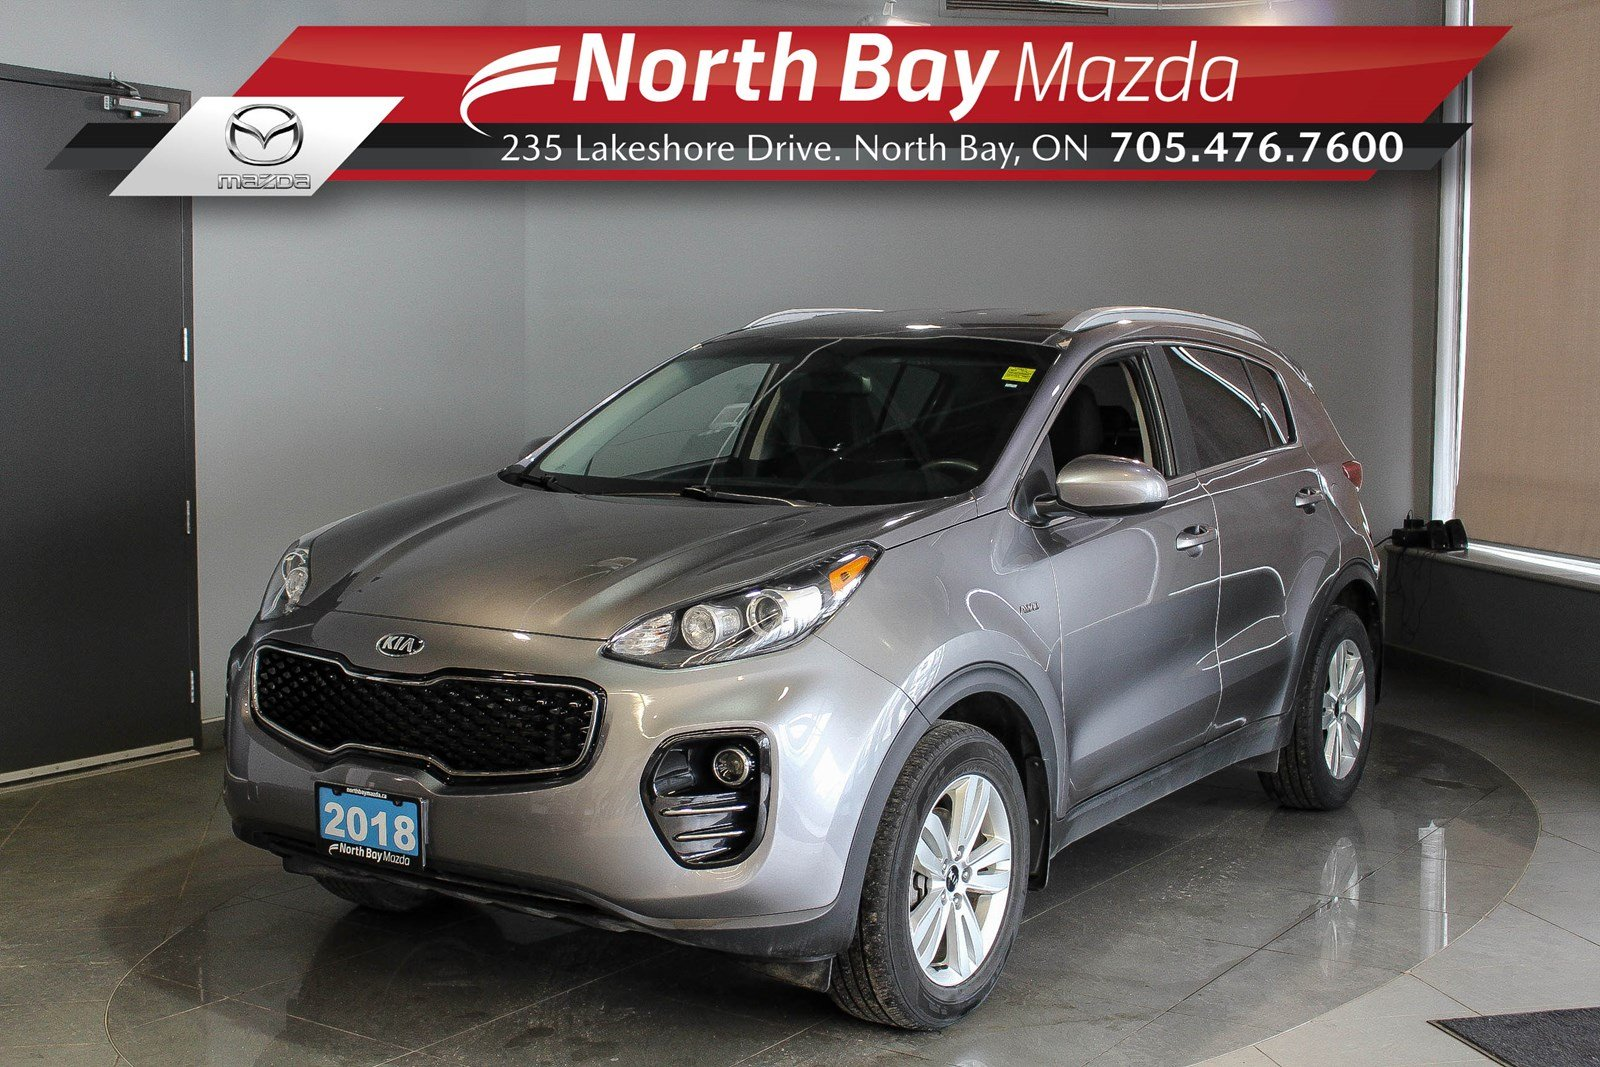 Pre-Owned 2018 Kia Sportage LX - Test Drive Available by Appt!